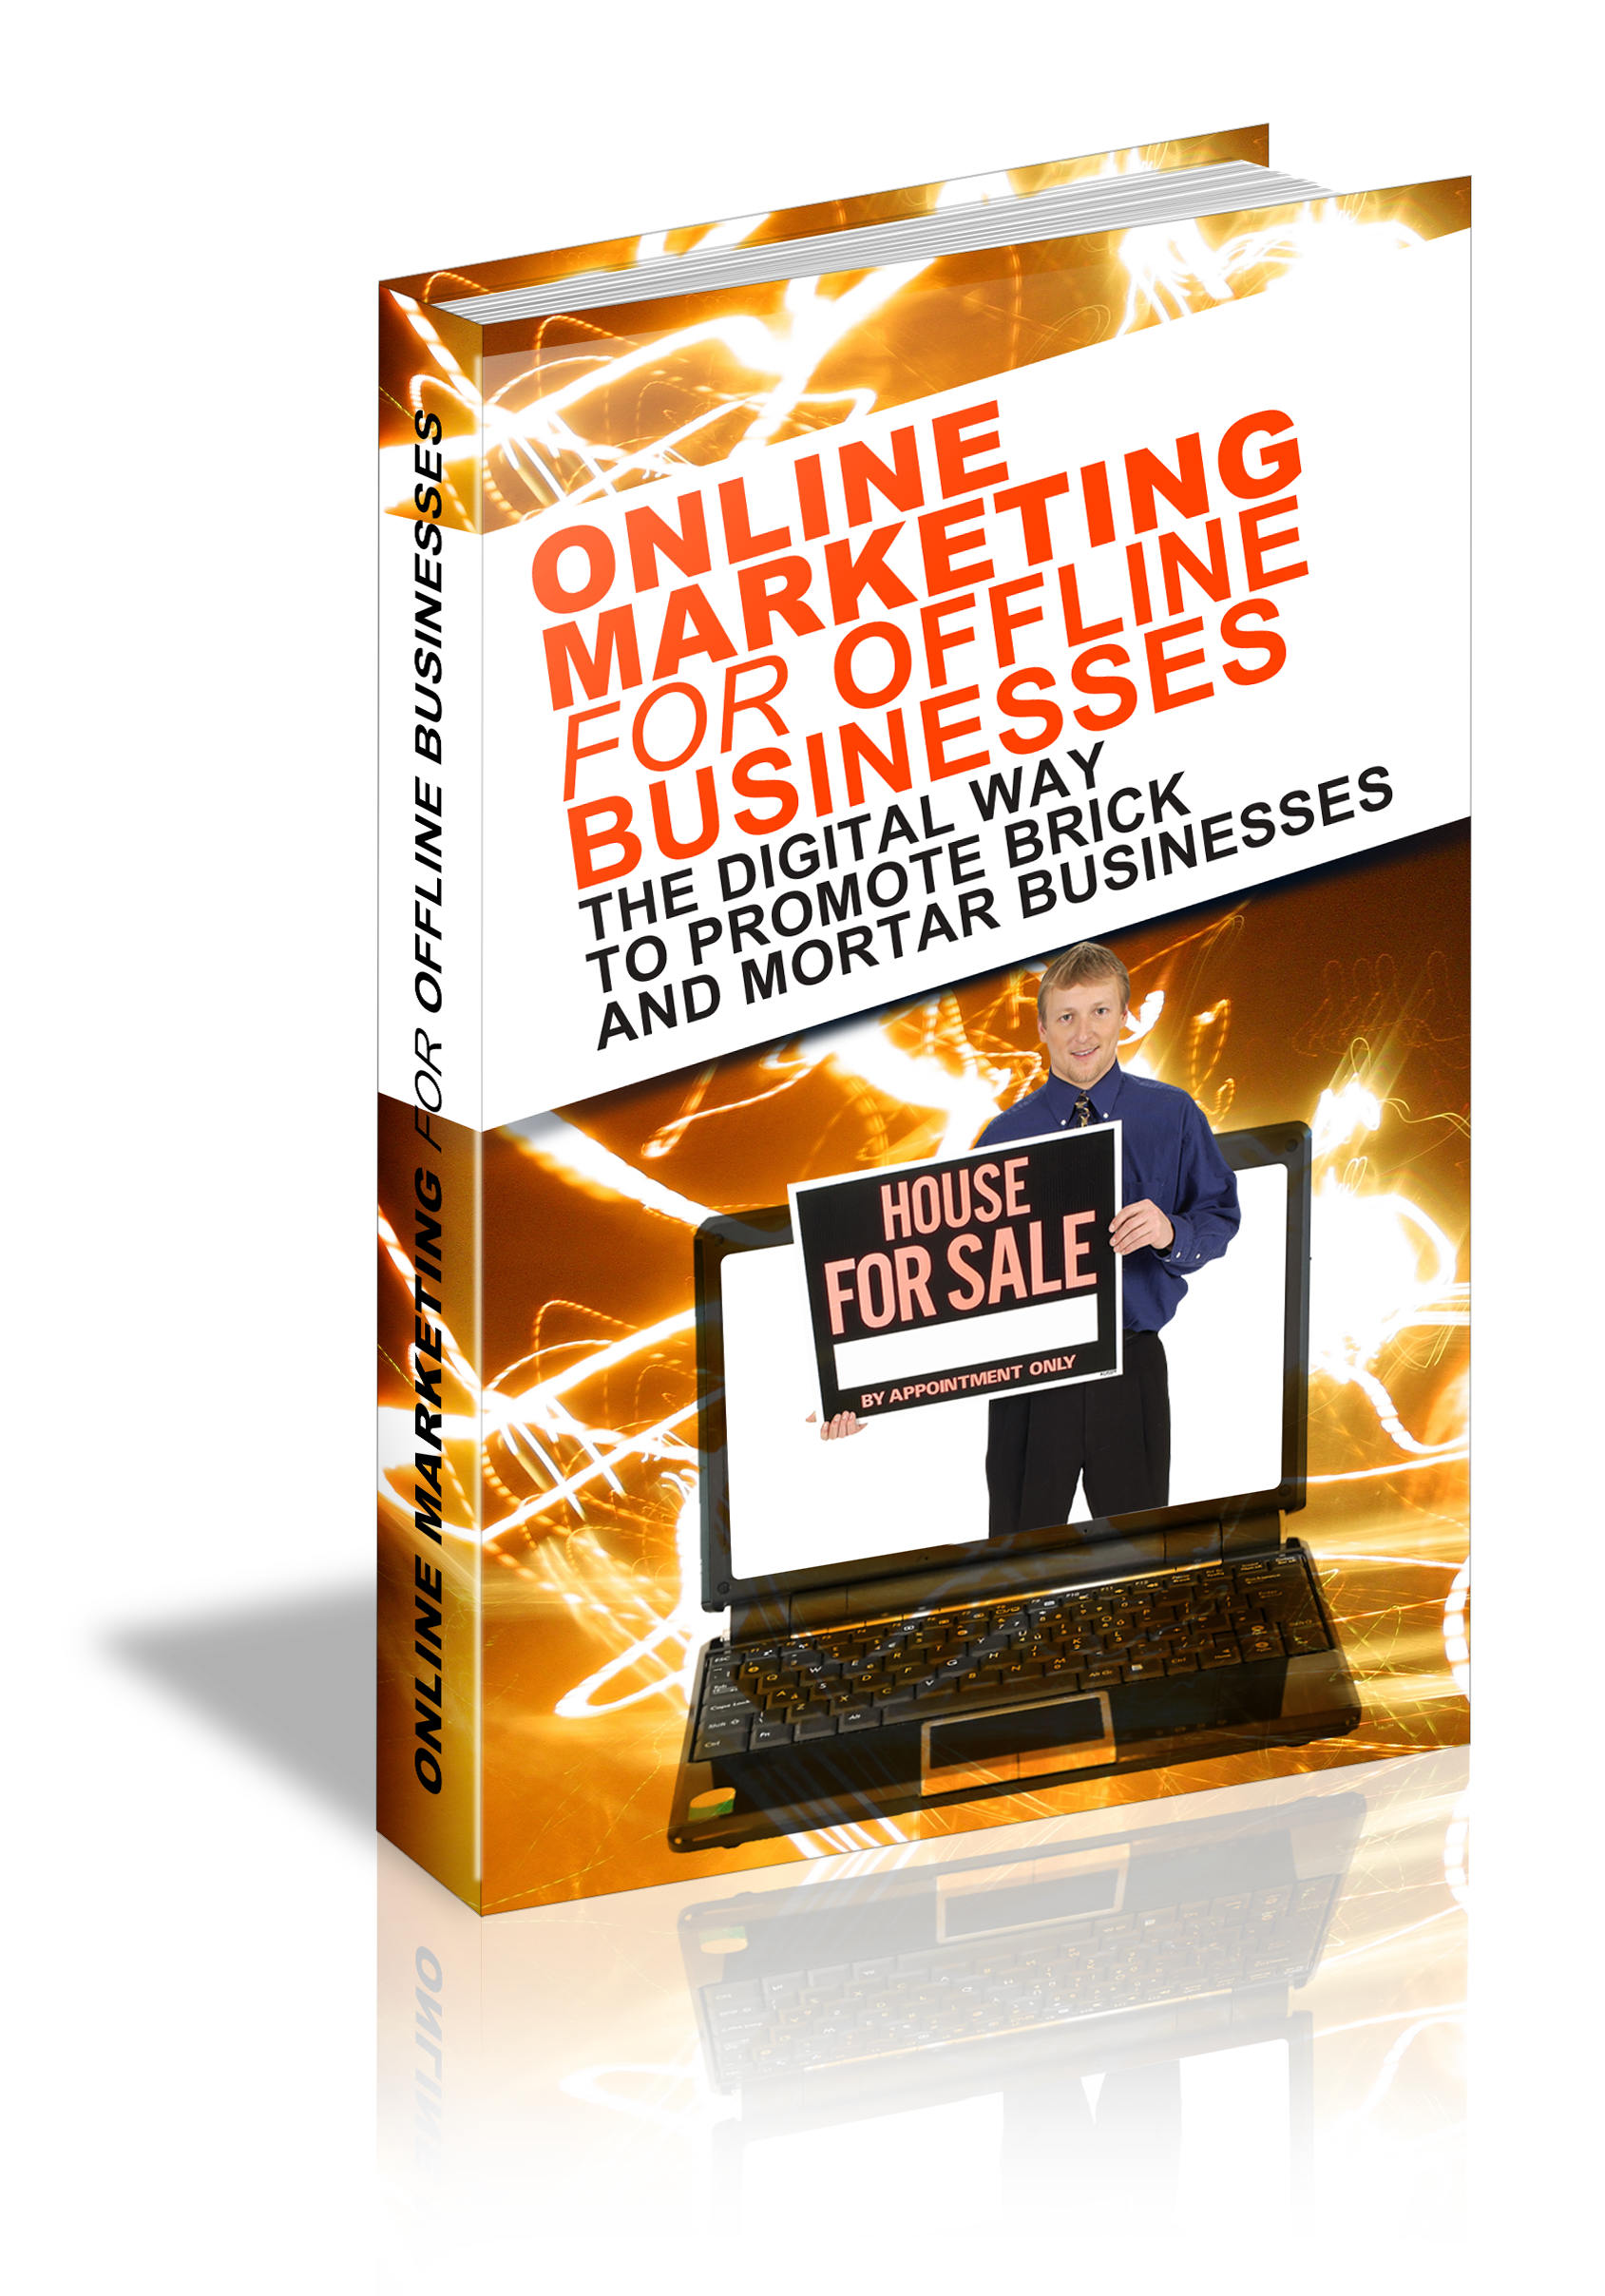 Online Marketing for Offline Businesses.